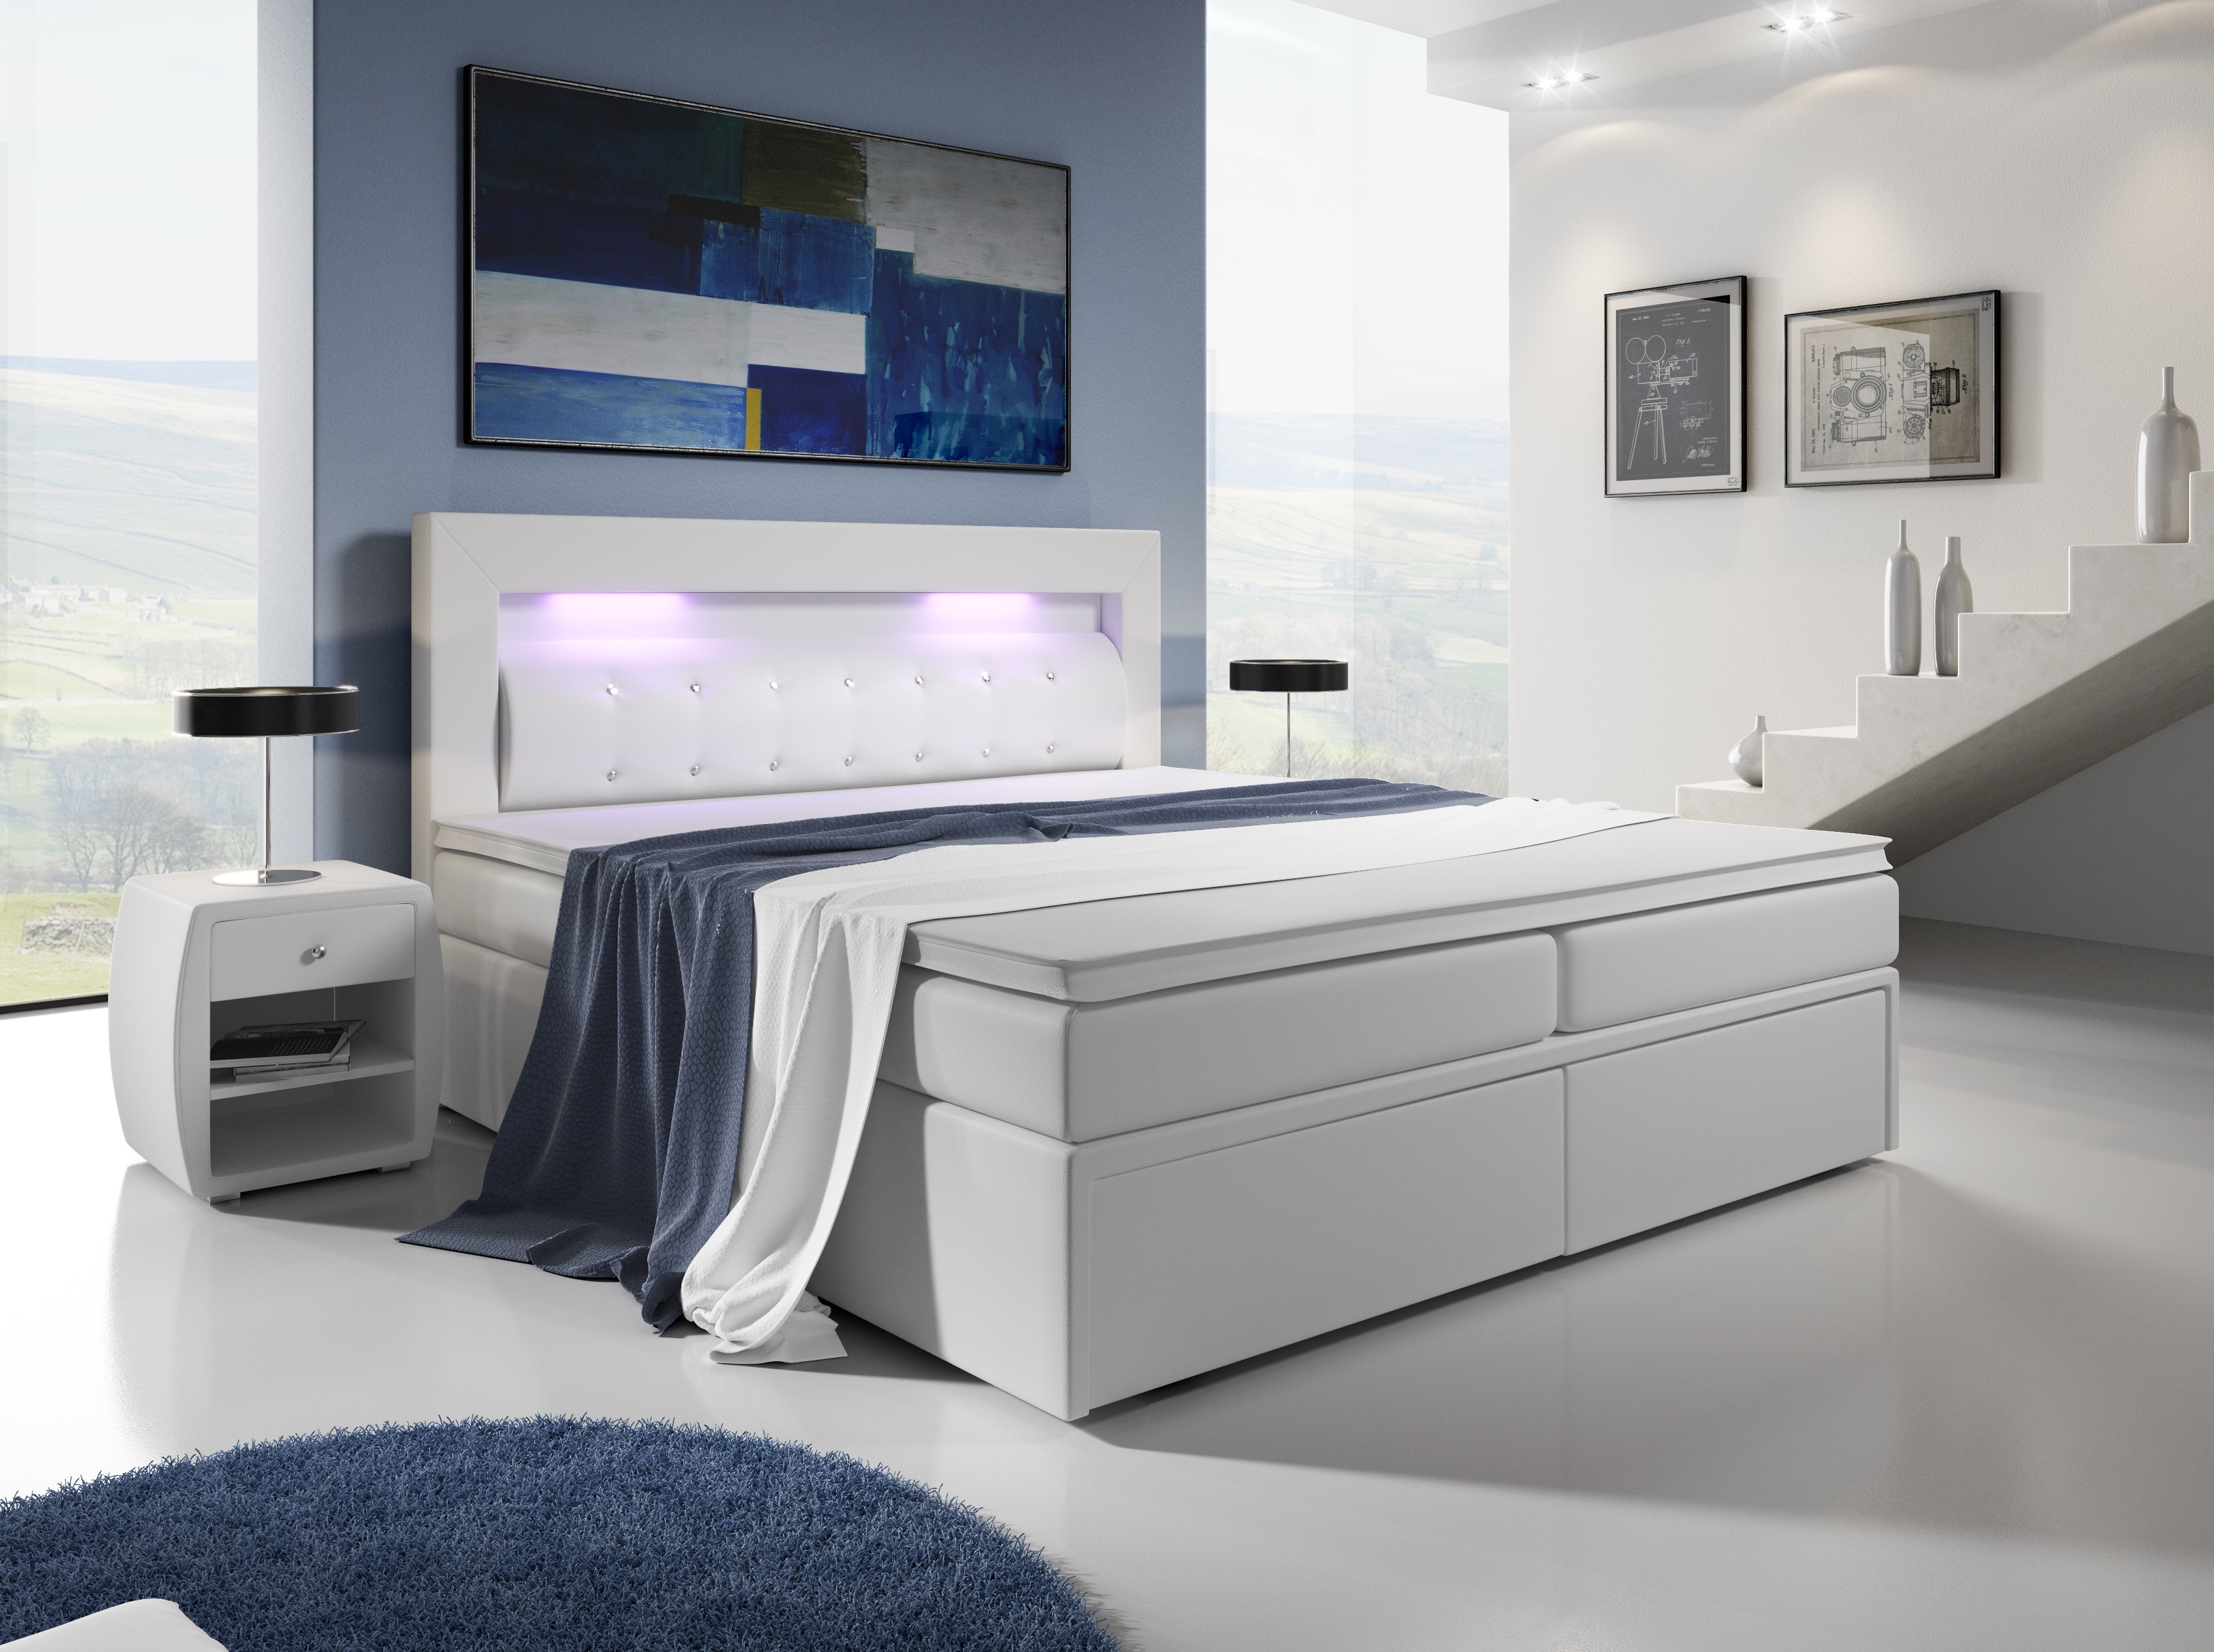 boxspringbett mallorca boxspringbett mit leds mit 2 schubladen. Black Bedroom Furniture Sets. Home Design Ideas